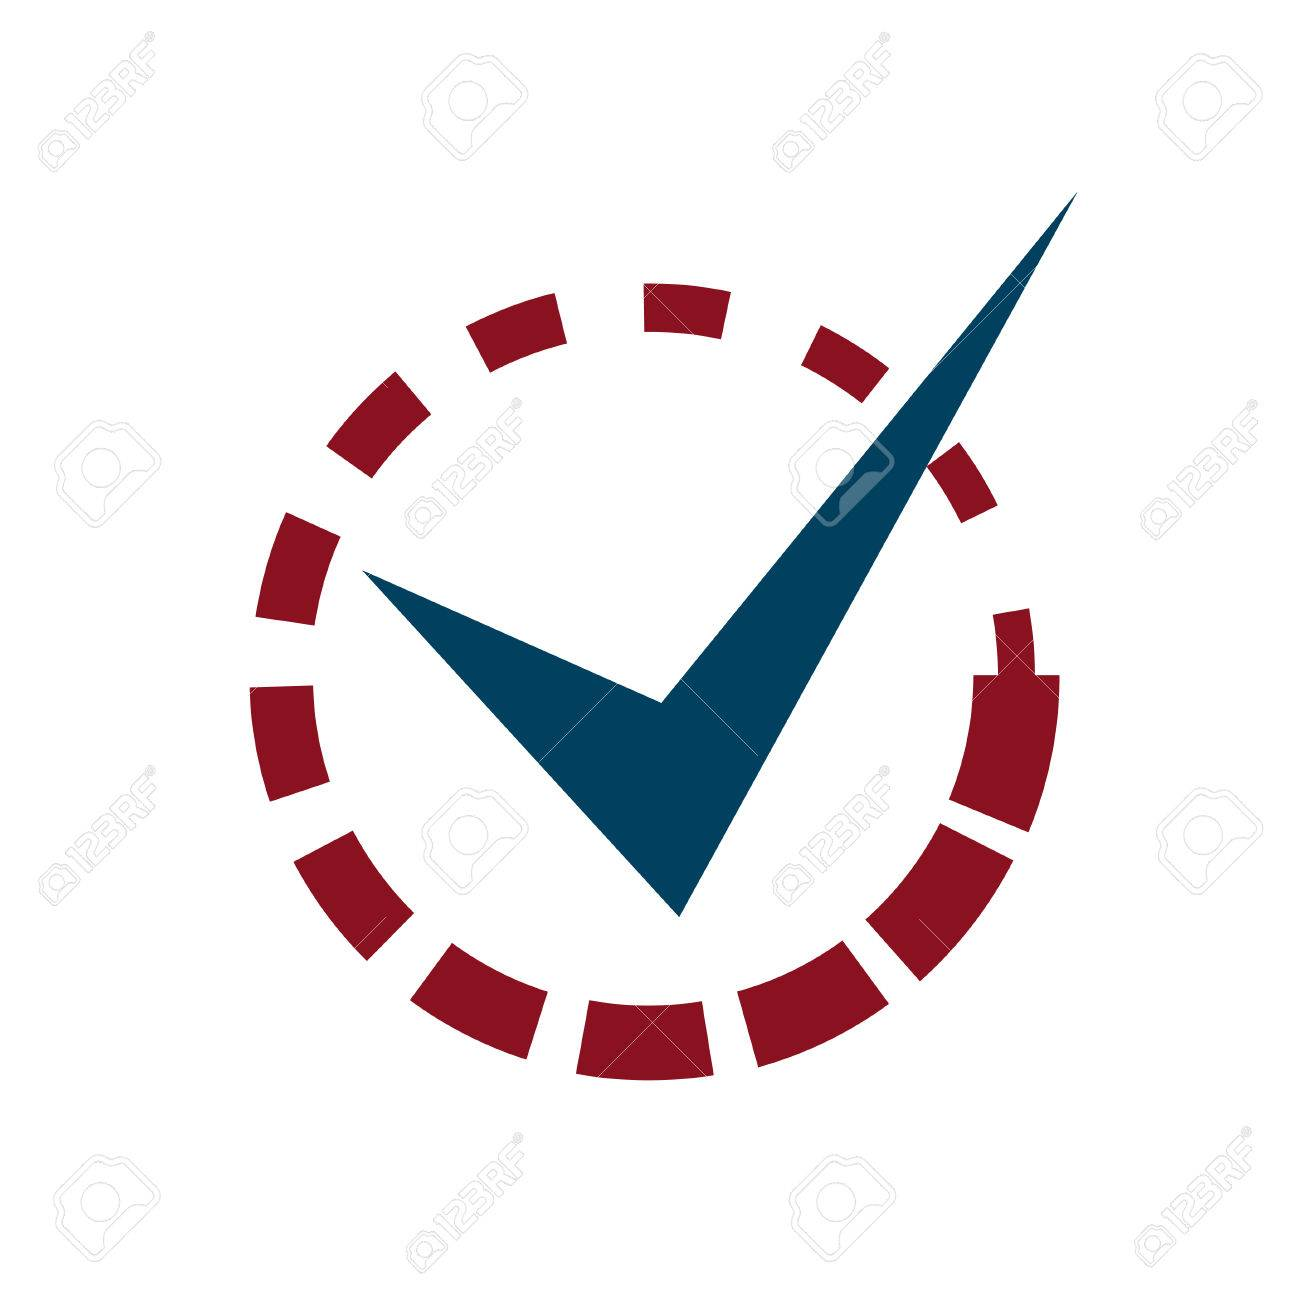 Tick Mark with Loading Sign Stock Vector - 23165762